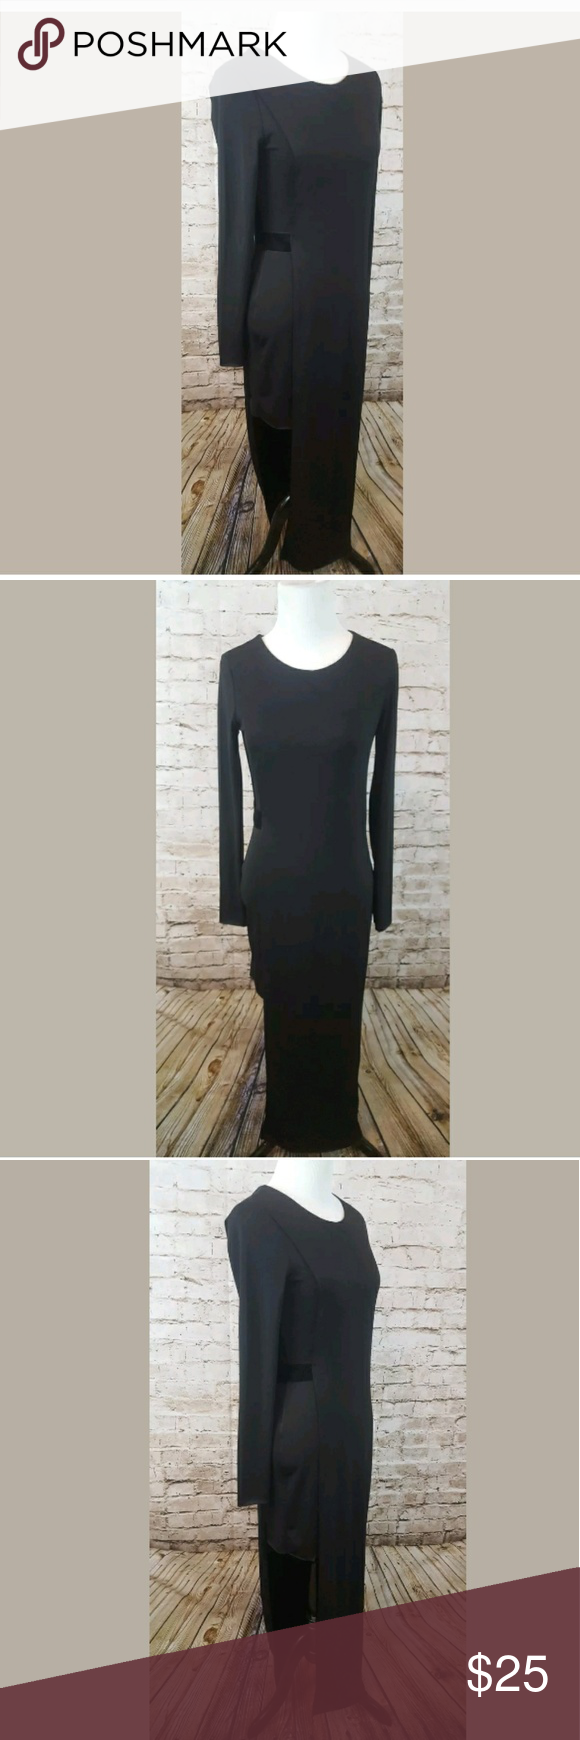 Zara black evening dress nwot size small zara black black evening